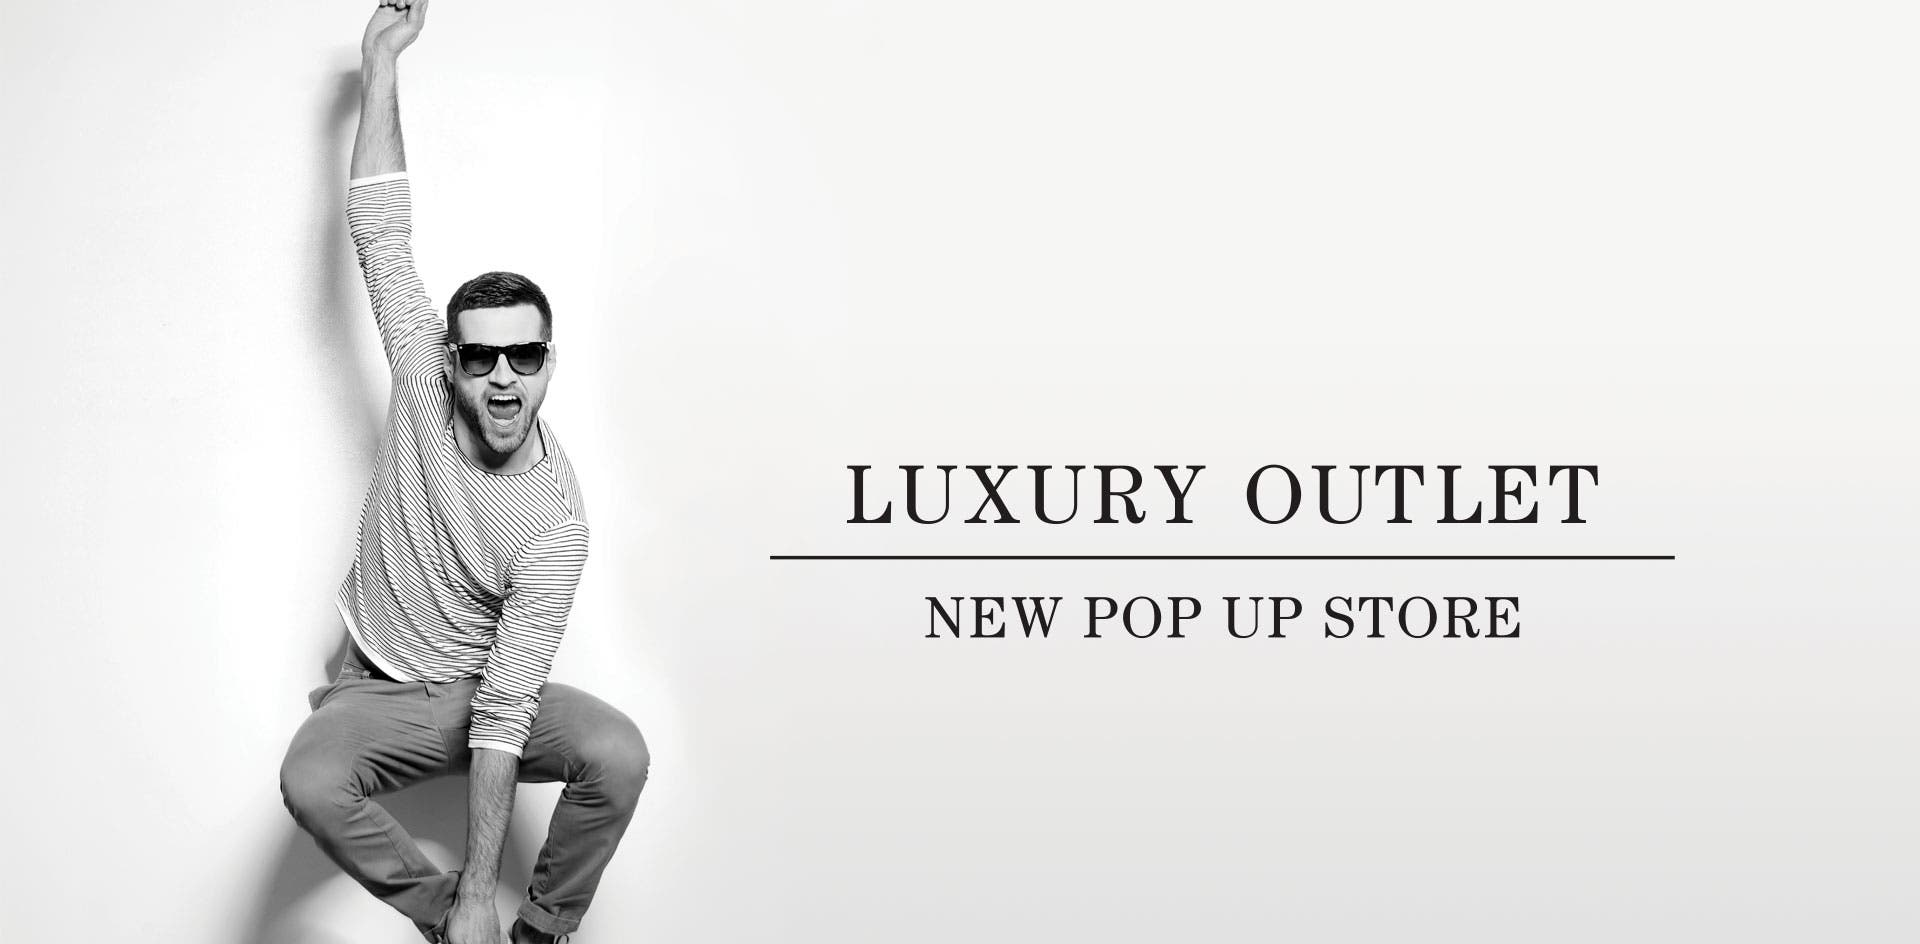 LUXURY OUTLET POP UP NEW STORE